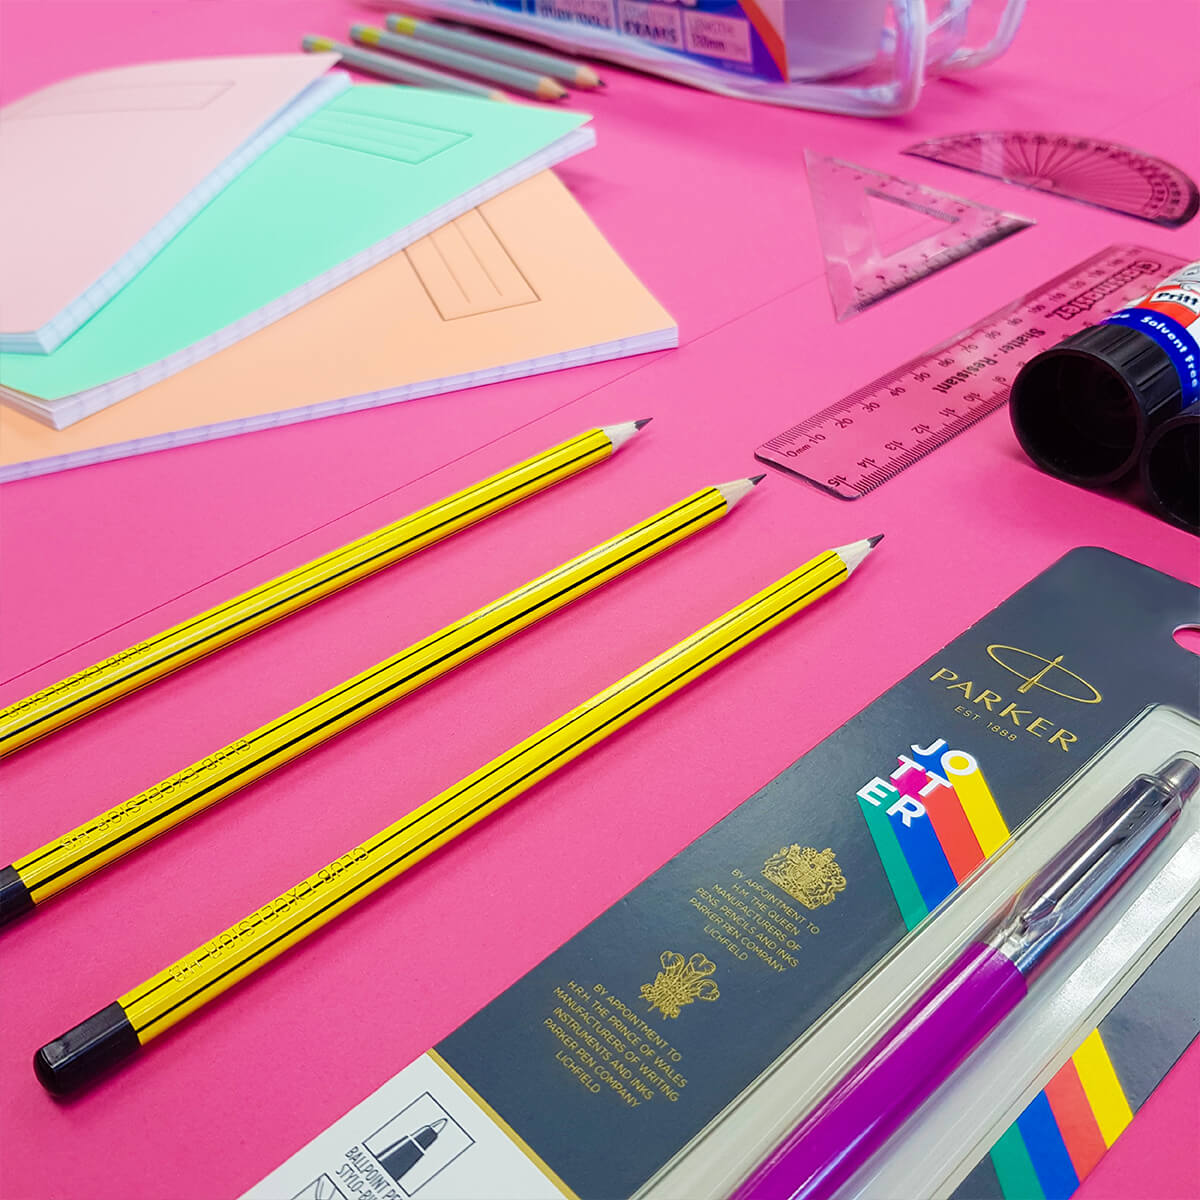 Back to School Stationery – pencils, pens, rulers, glue, notebooks, pencil cases